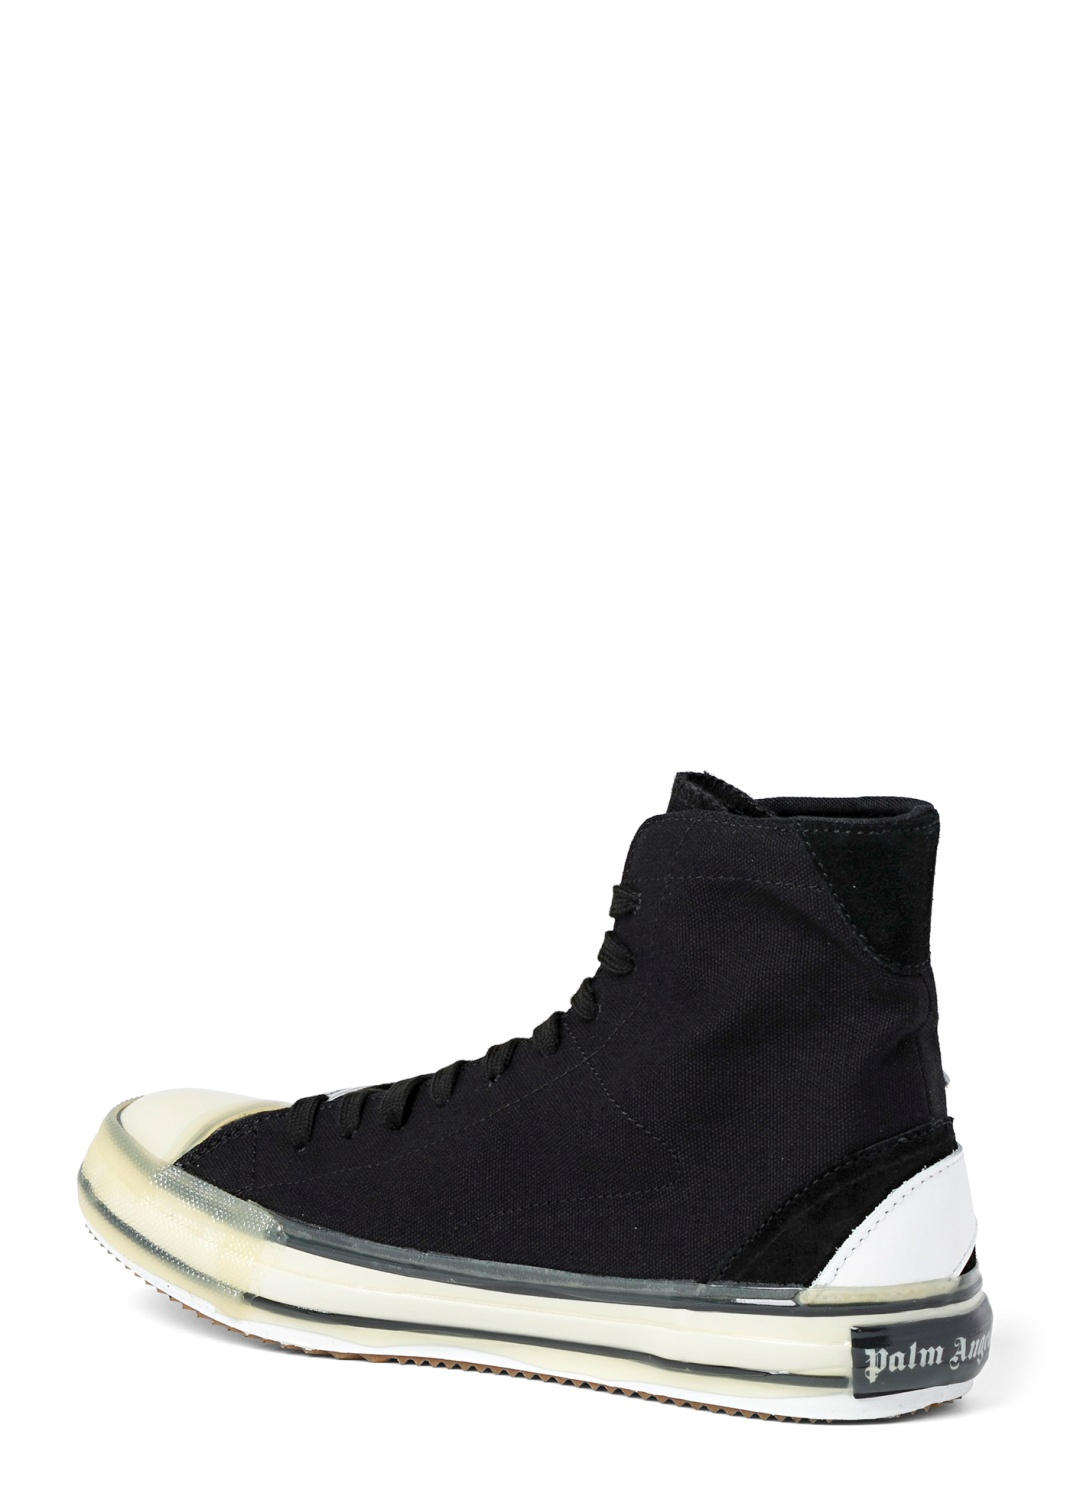 VULC PALM HIGH TOP BLACK WHITE image number 2